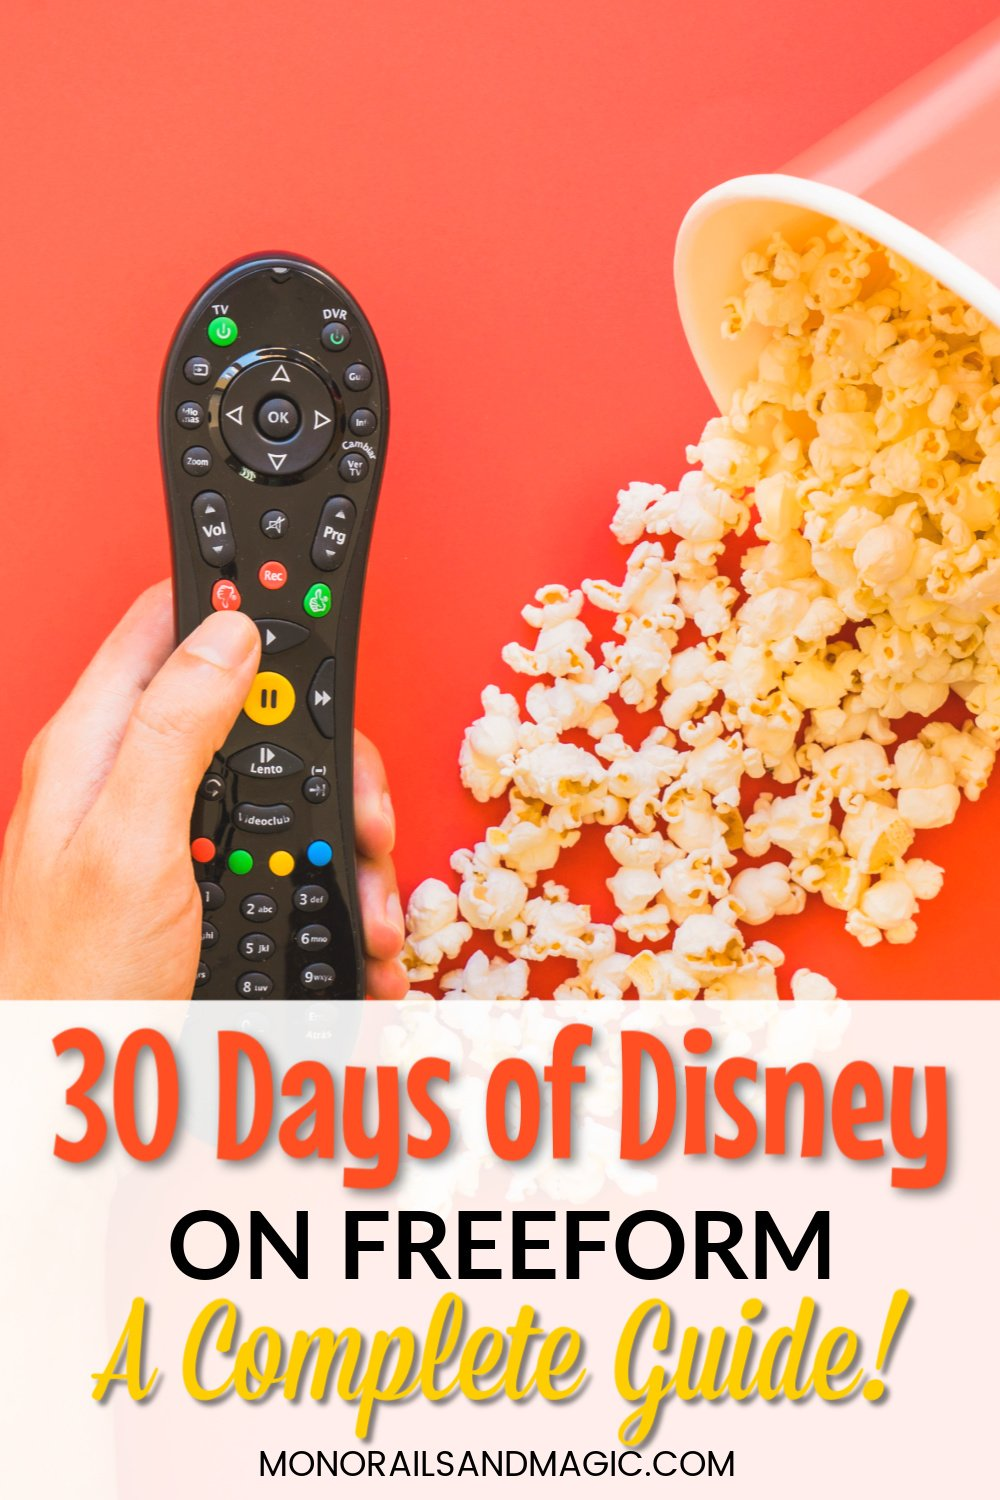 Complete Guide to 30 Days of Disney